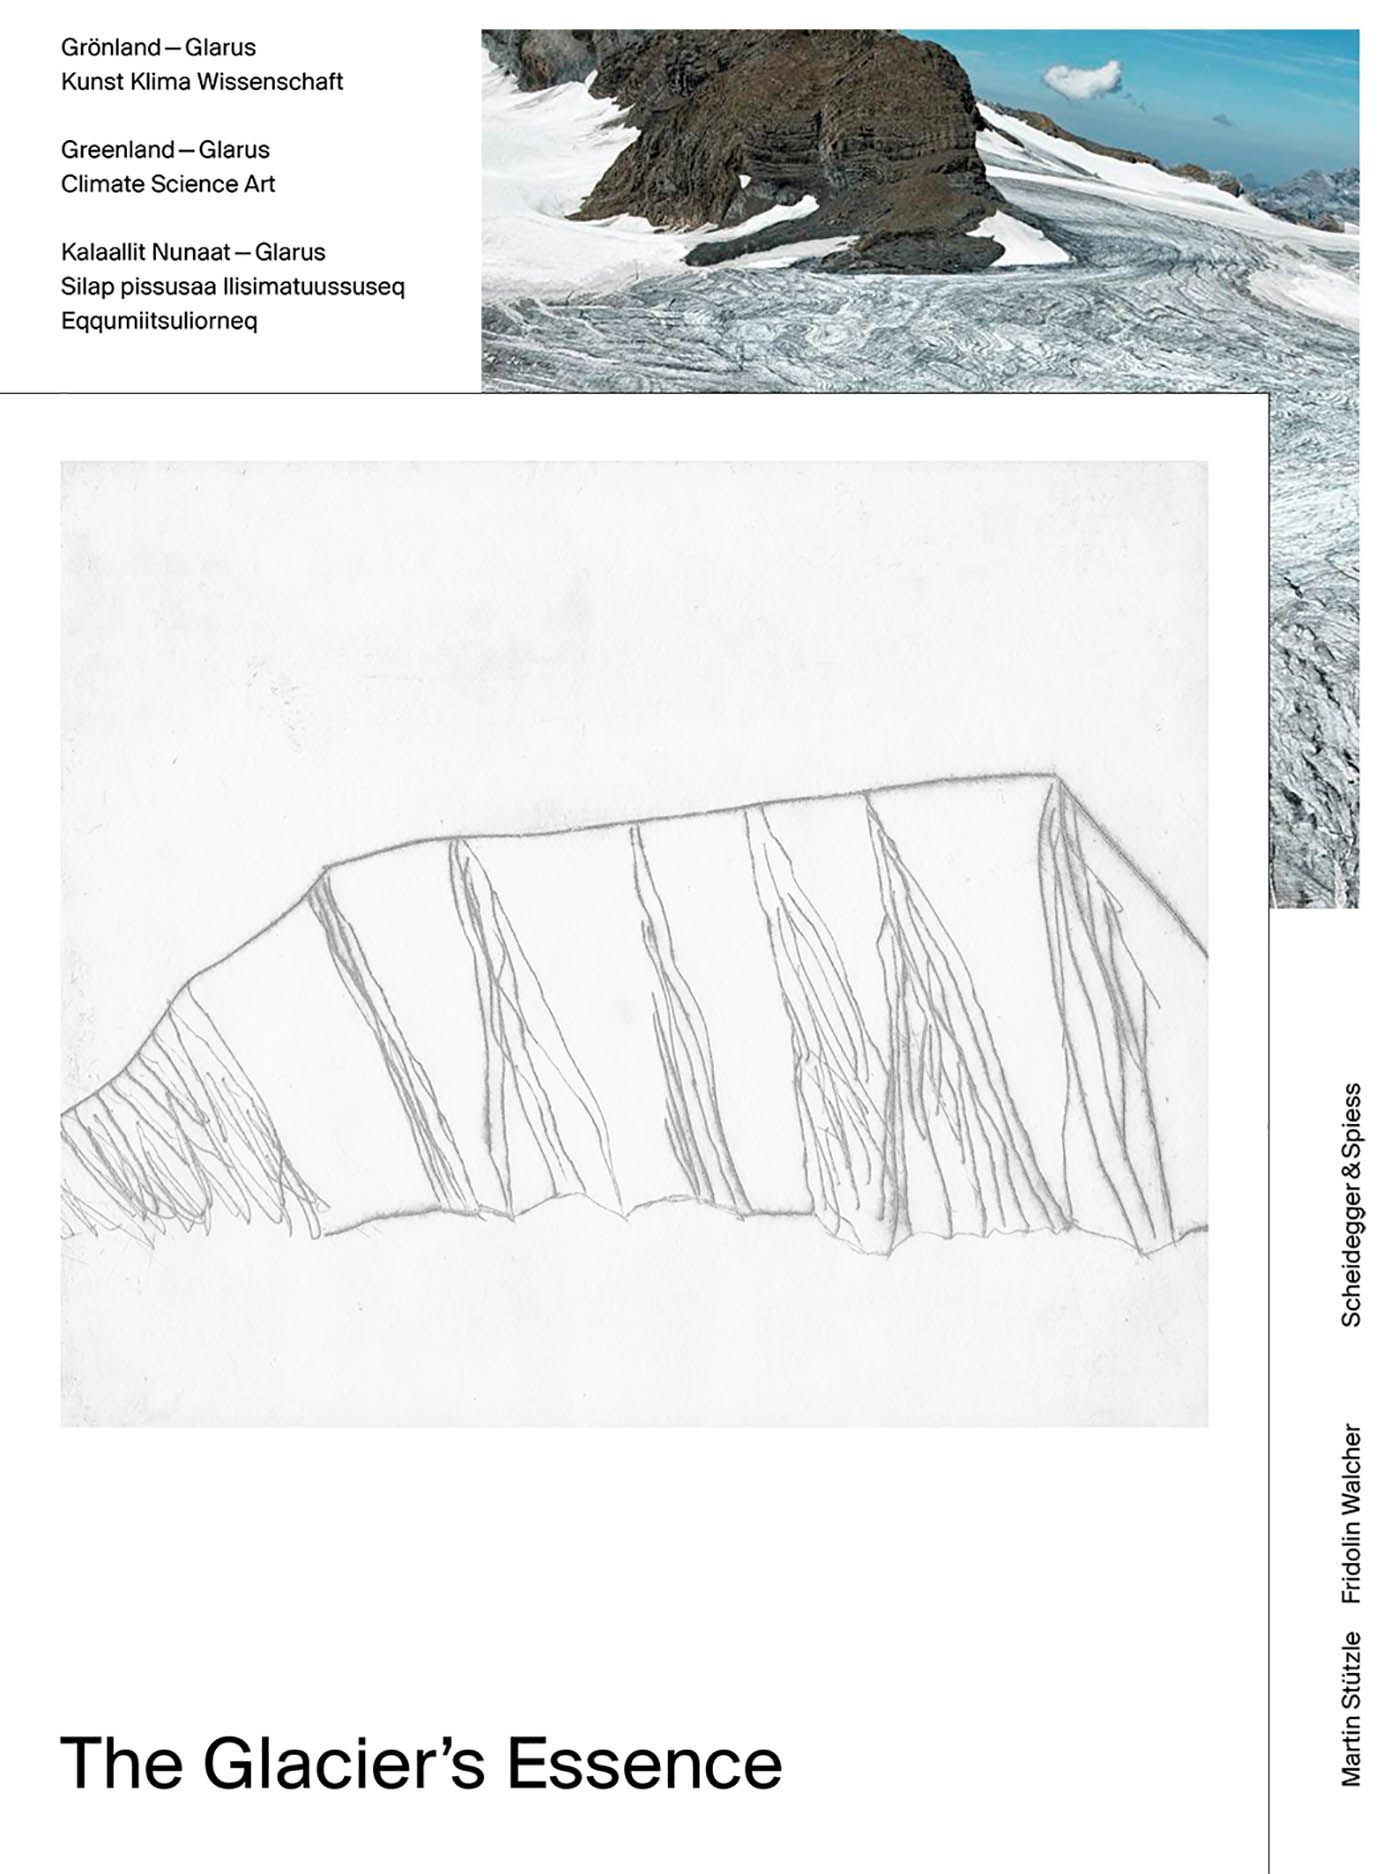 The Glacier's Essence: Greenland—Glarus. Climate, Science, Art